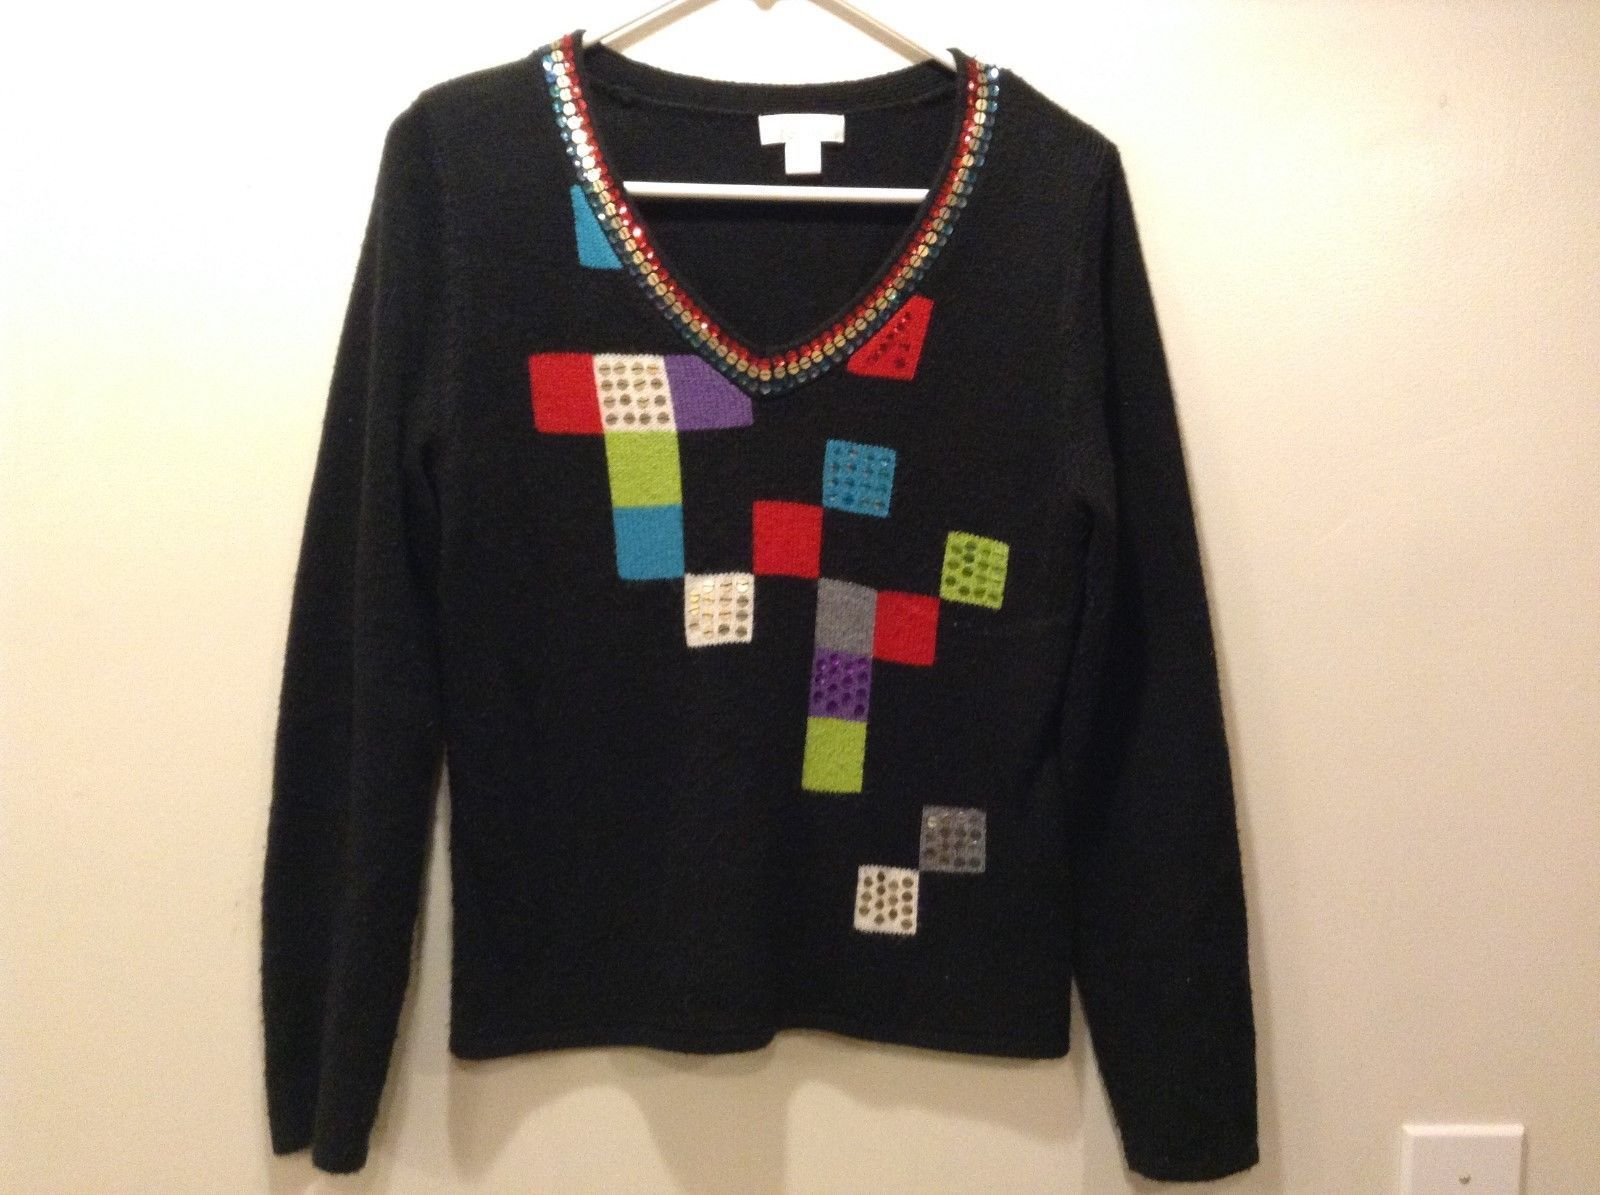 Christopher Banks Women's Black w Multicolor Geometric Design V-Neck Sweater